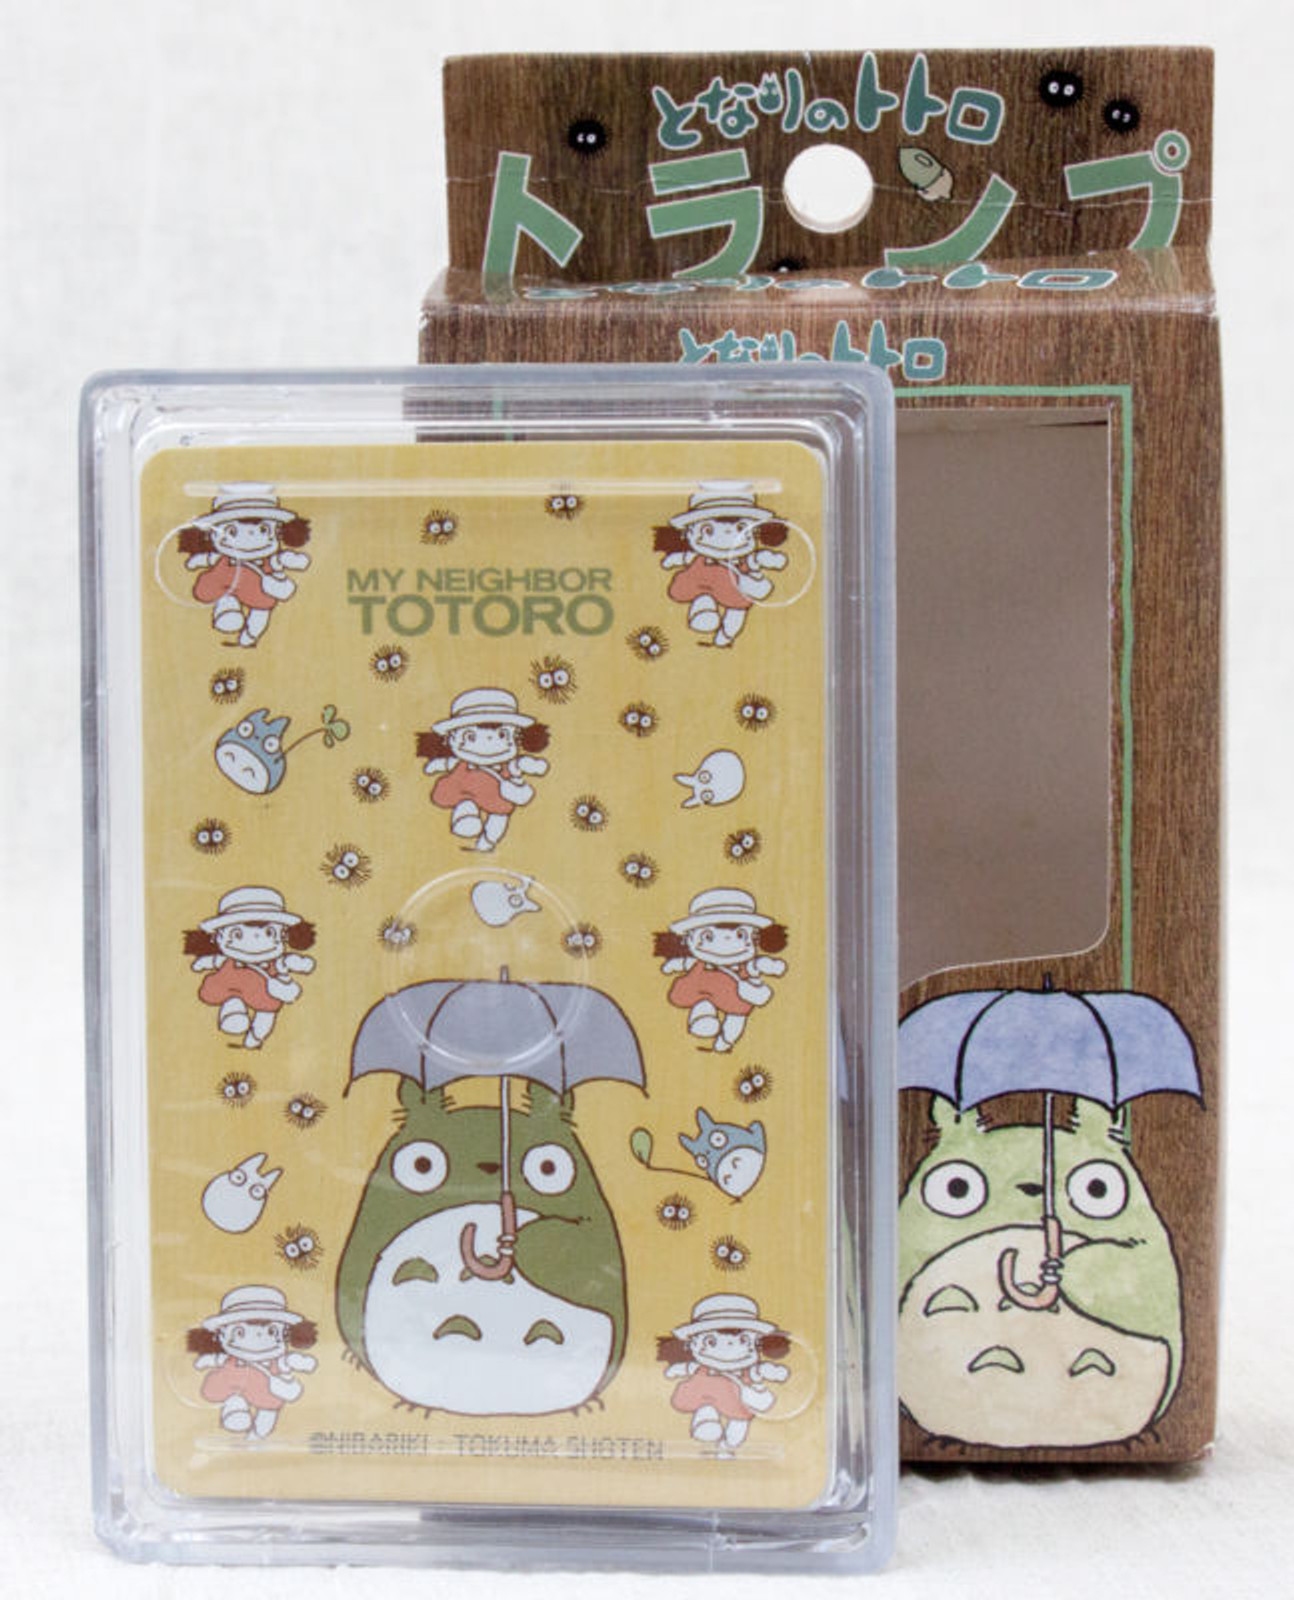 My Neighbor Totoro Trump Playing Cards Ghibli JAPAN ANIME MANGA